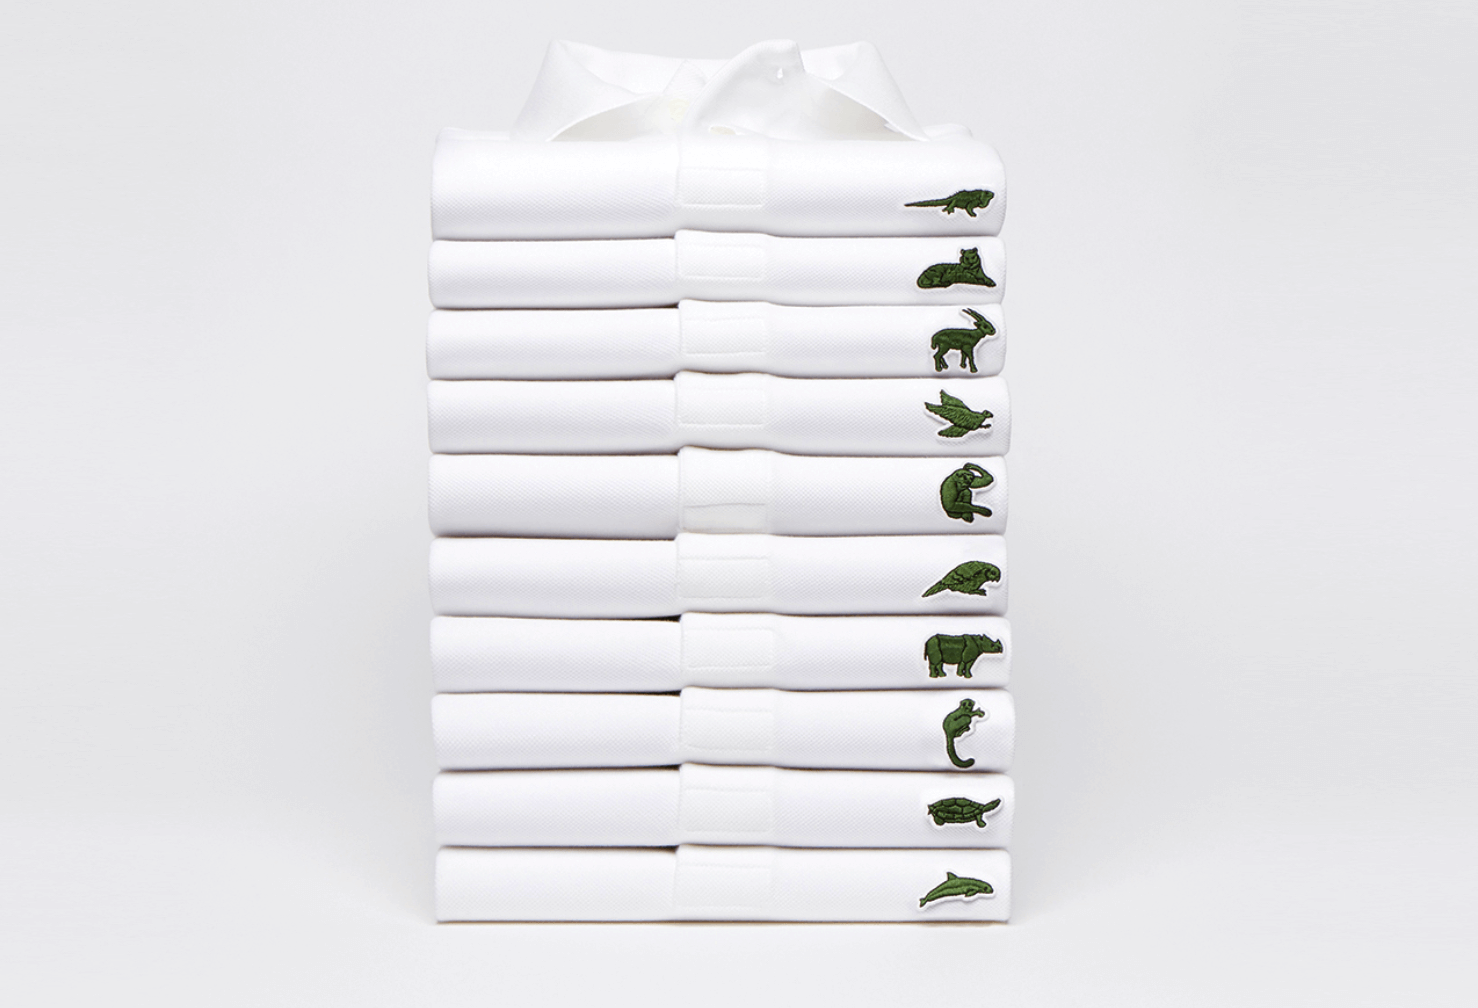 Iconic Fashion Brand Lacoste Highlights Endangered Species in Limited-Edition Line